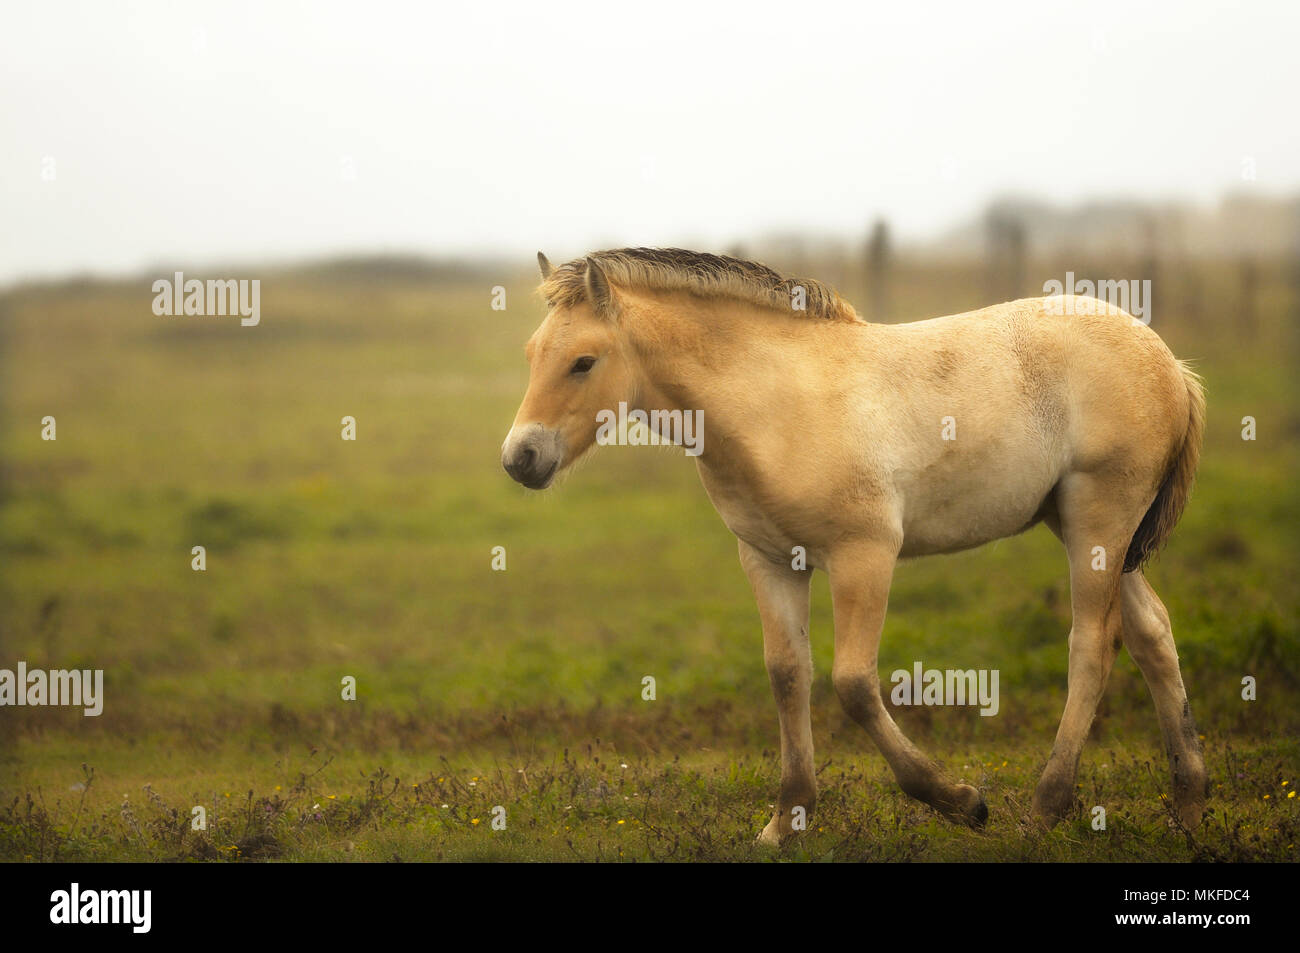 Henson foal under a drizzling late summer rain at Hâble d'Ault in Somme Bay, Picardie, France Stock Photo